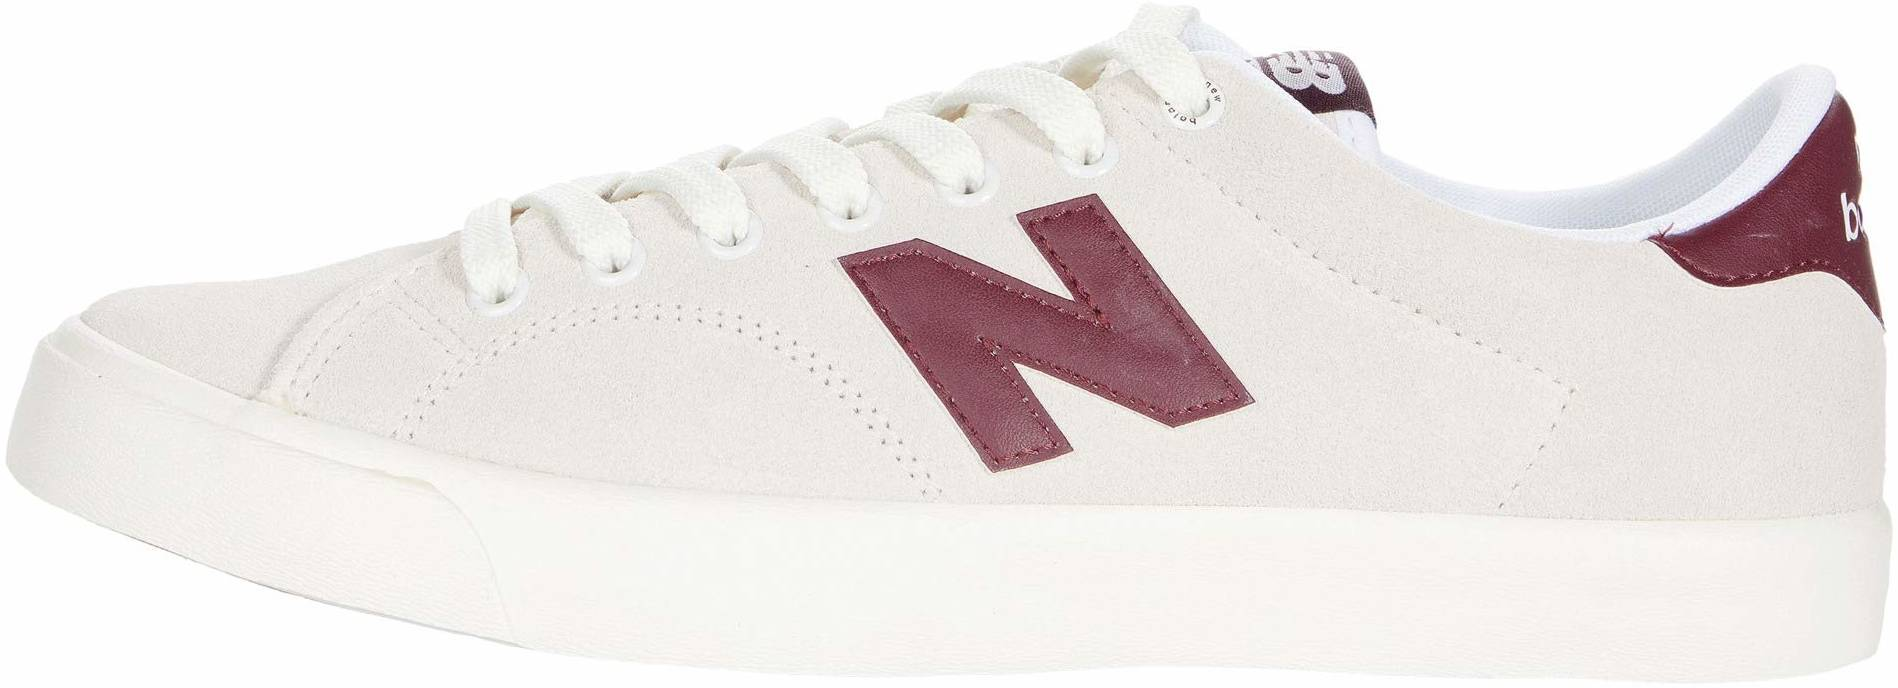 New Balance 210 sneakers in grey beige (only $42)   RunRepeat